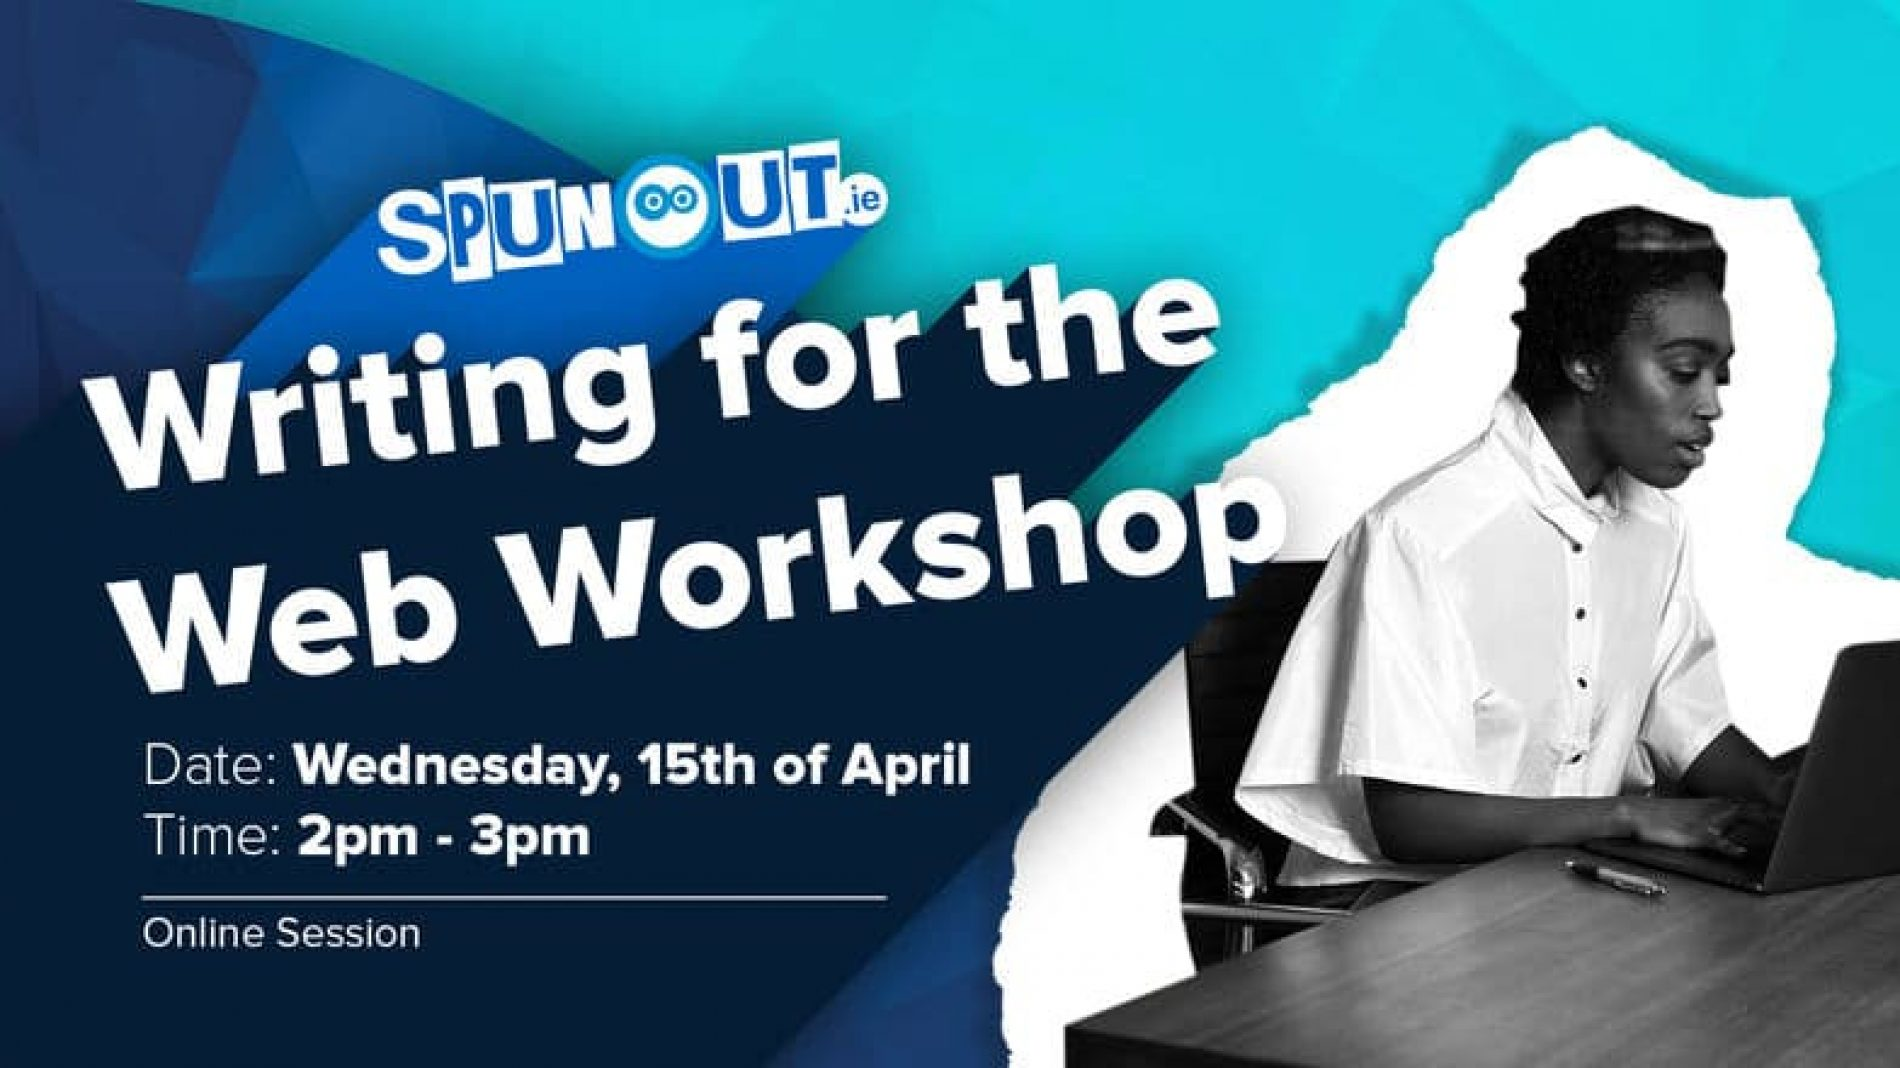 Sign up now for SpunOut.ie's 'Writing for the Web' workshop